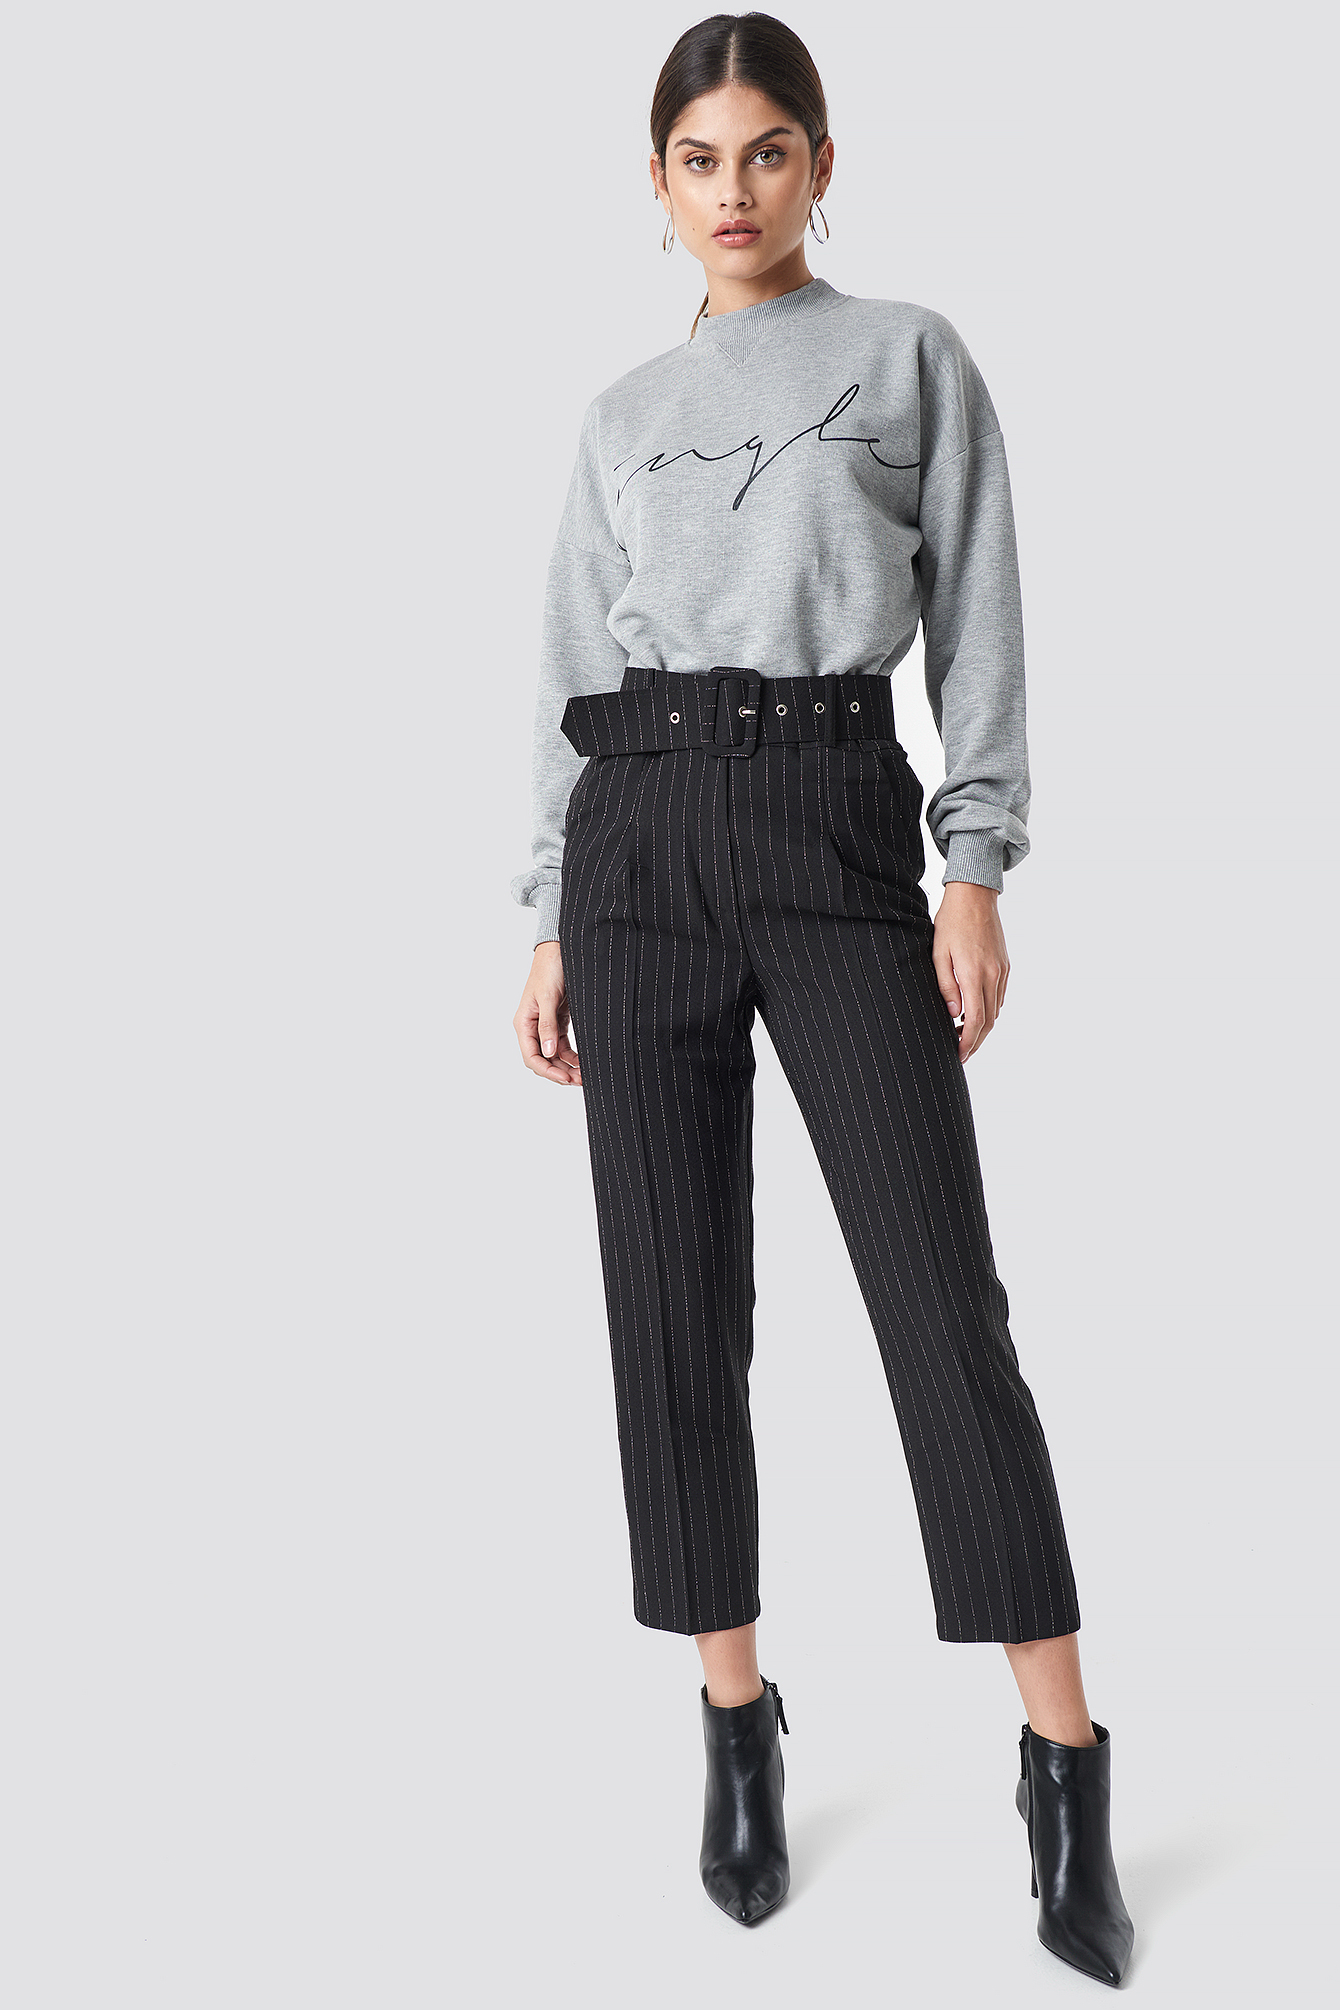 Waistband Detailed Pants NA-KD.COM